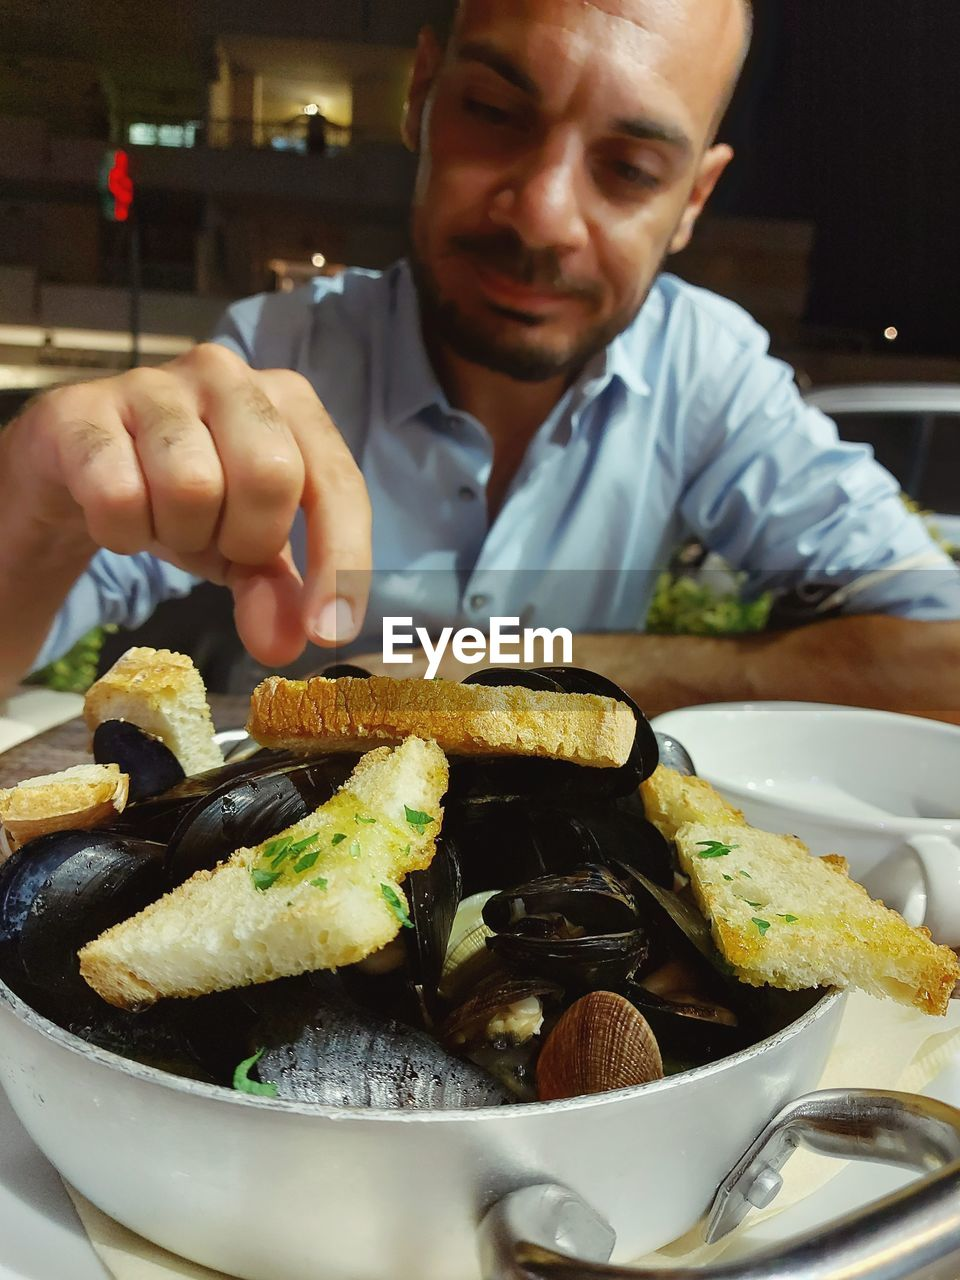 MIDSECTION OF MAN HAVING FOOD AT RESTAURANT